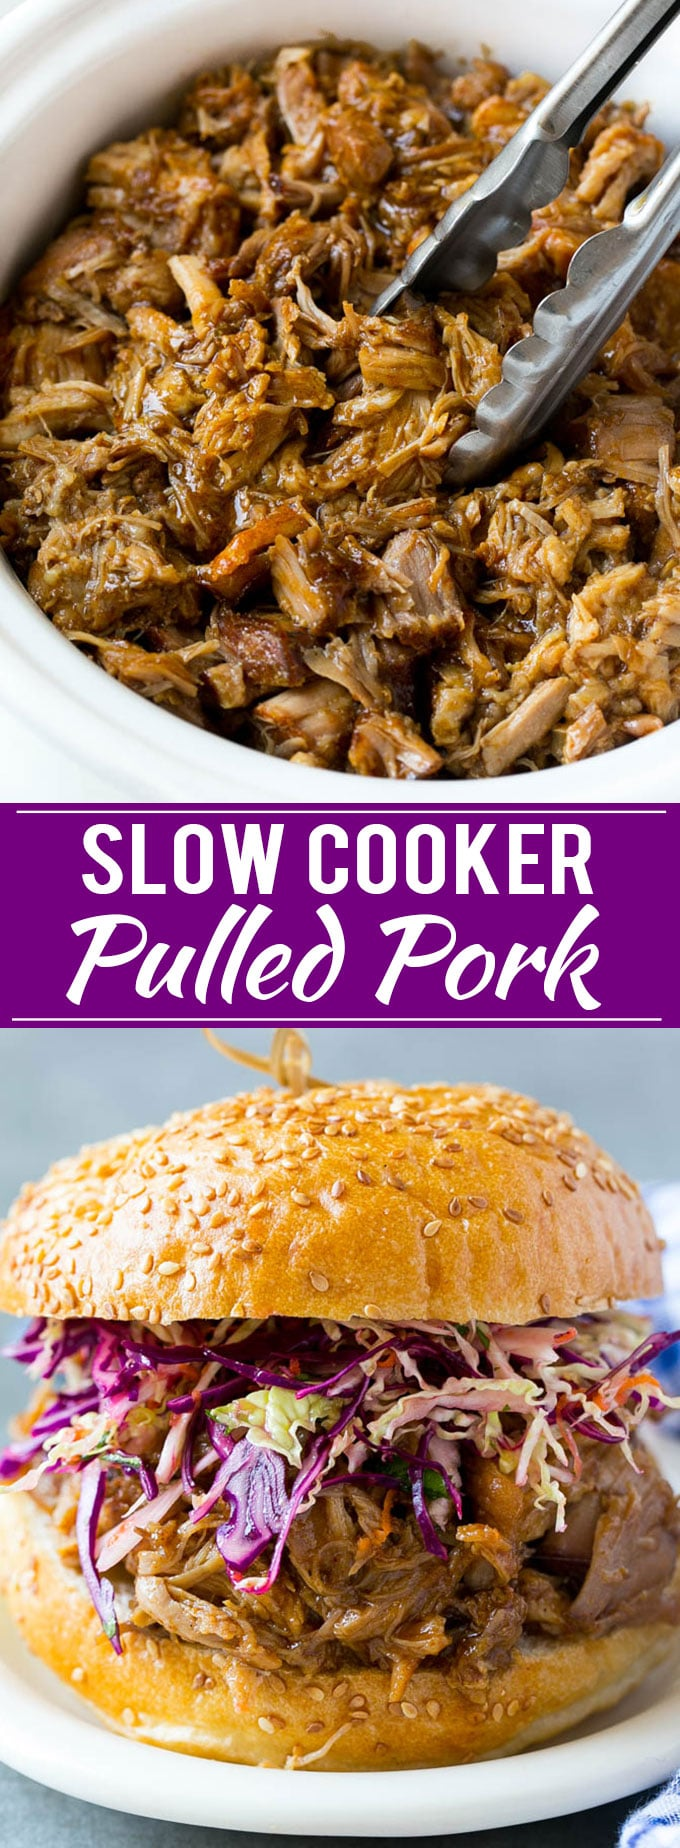 Slow Cooker Pulled Pork Sandwiches Recipe | Slow Cooker Pulled Pork | Crockpot Pulled Pork | Slow Cooker Sandwich